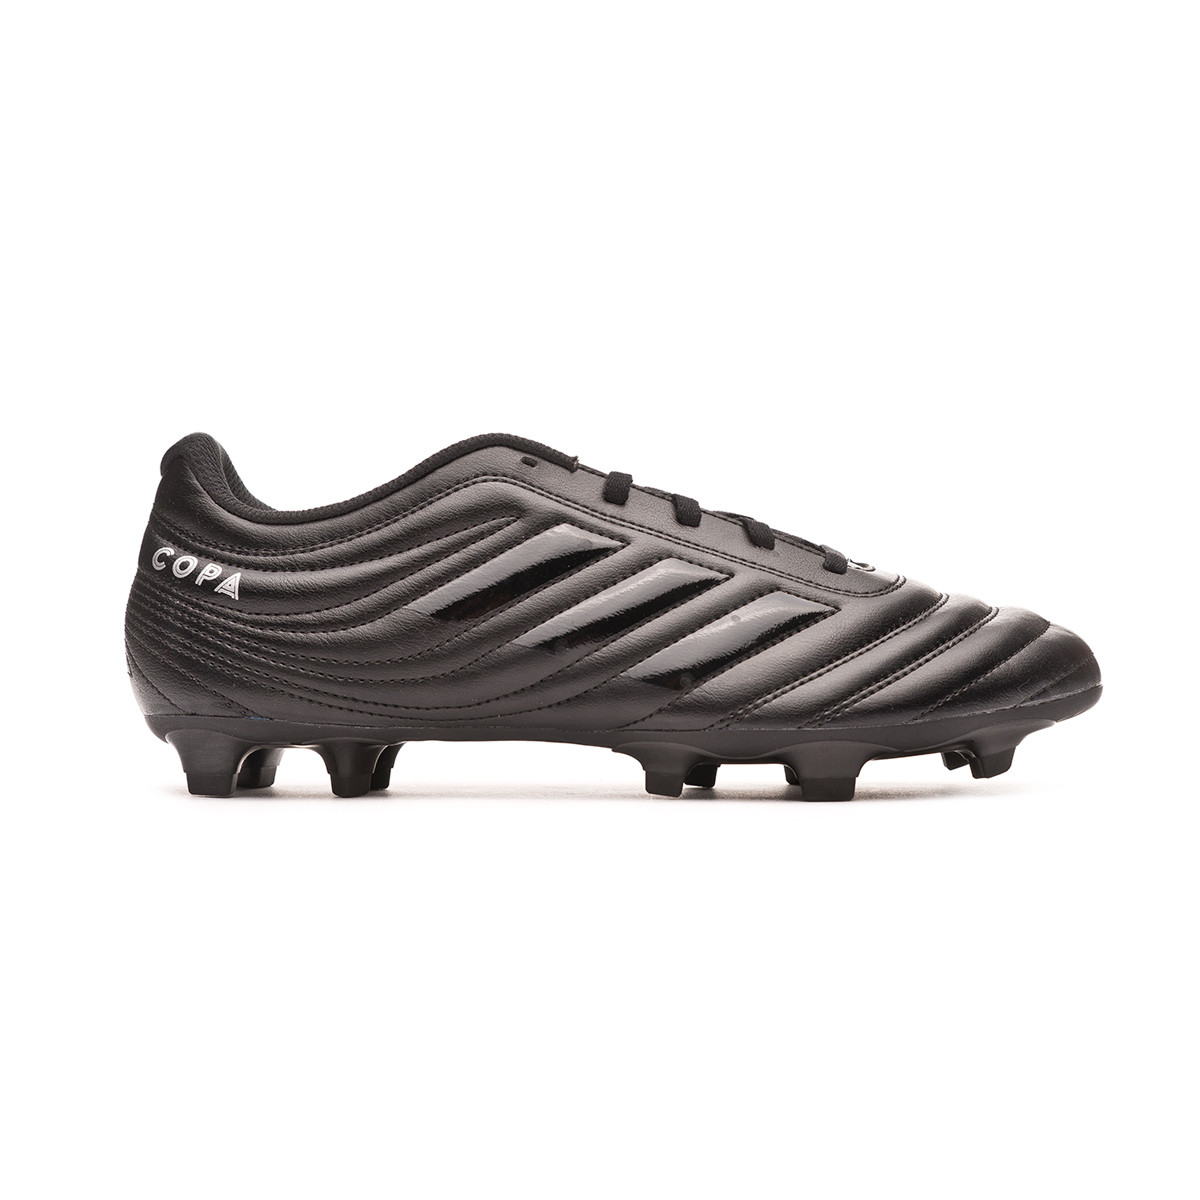 5de4c2c049e6c Football Boots adidas Copa 19.4 FG Core black - Nike Mercurial Superfly |  Shop Nike Soccer Cleats ypsoccer.com